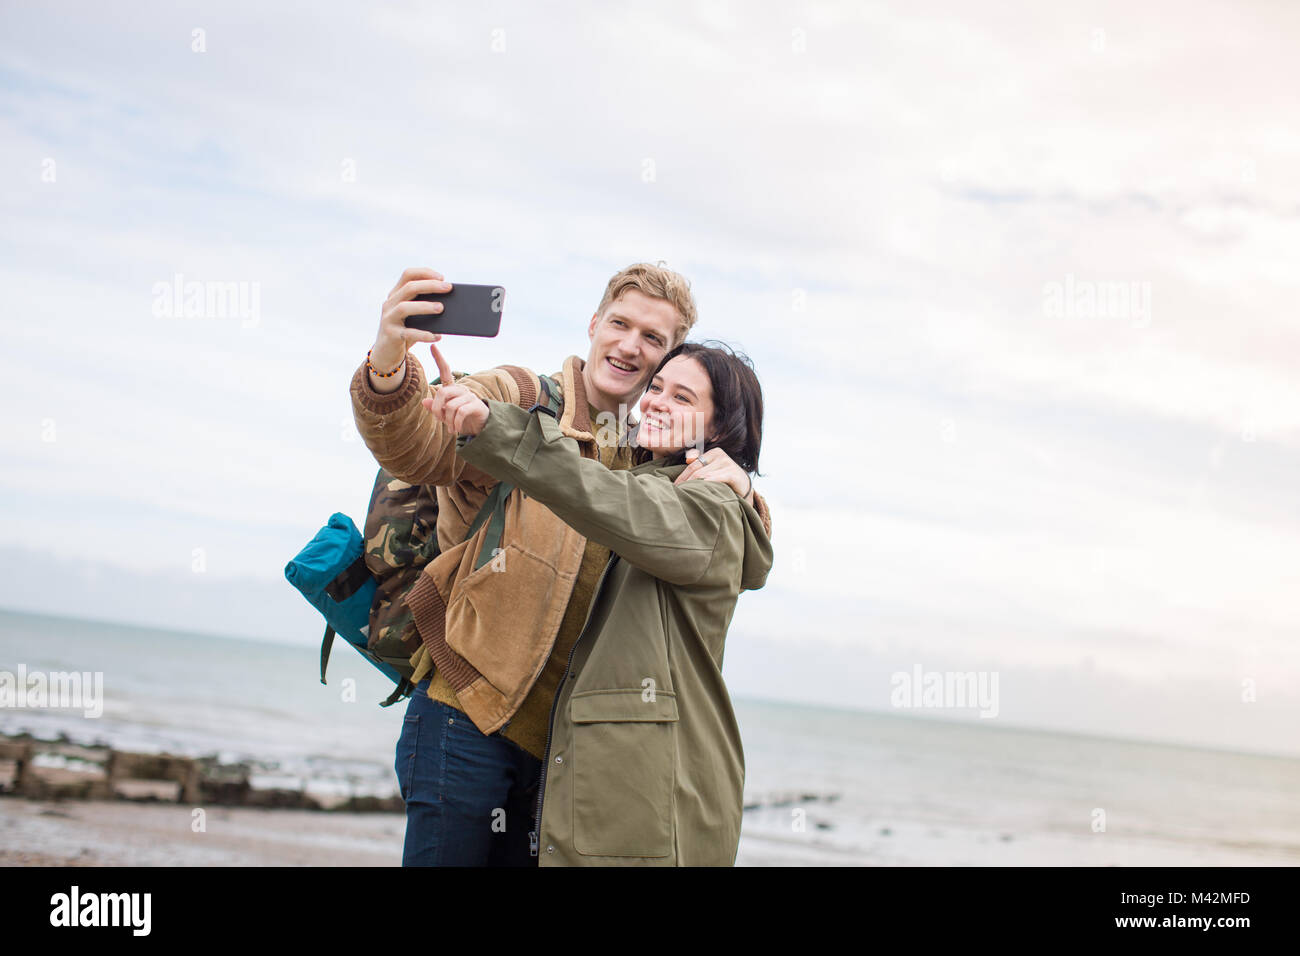 Young couple taking a selfie on the beach in winter - Stock Image